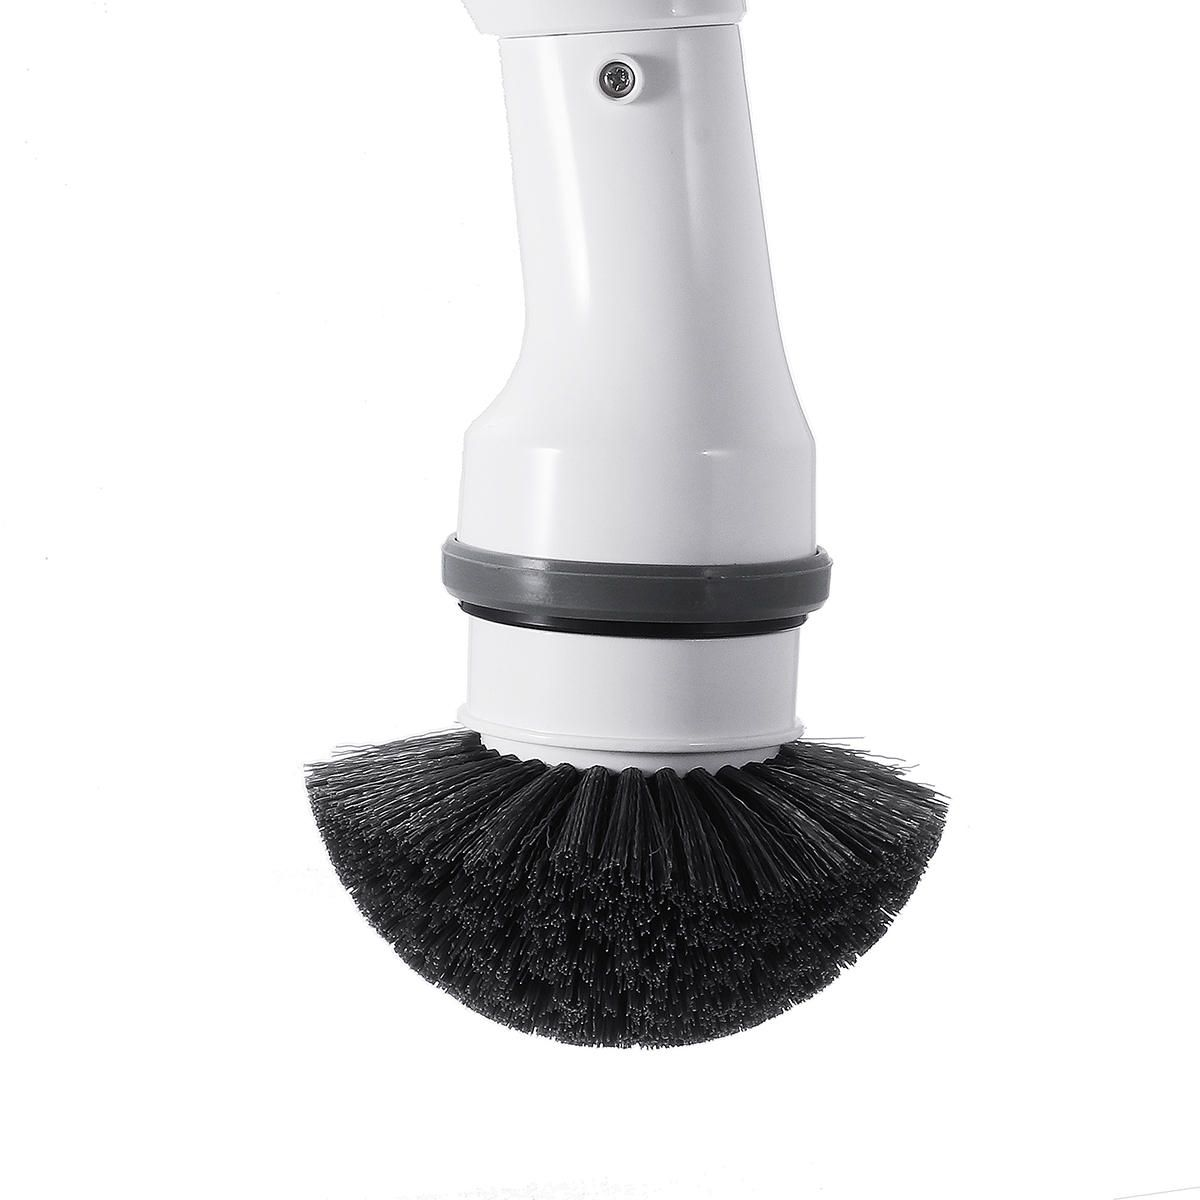 XZV US$32.99 MECO Electric Spin Scrubber Cleaner Power Cordless Tub and Tile Scrubber Handheld Cleaning Supplies with 3 Replaceable Brush Heads for Bathroom Floor Kitchen Car Sink Wall Window